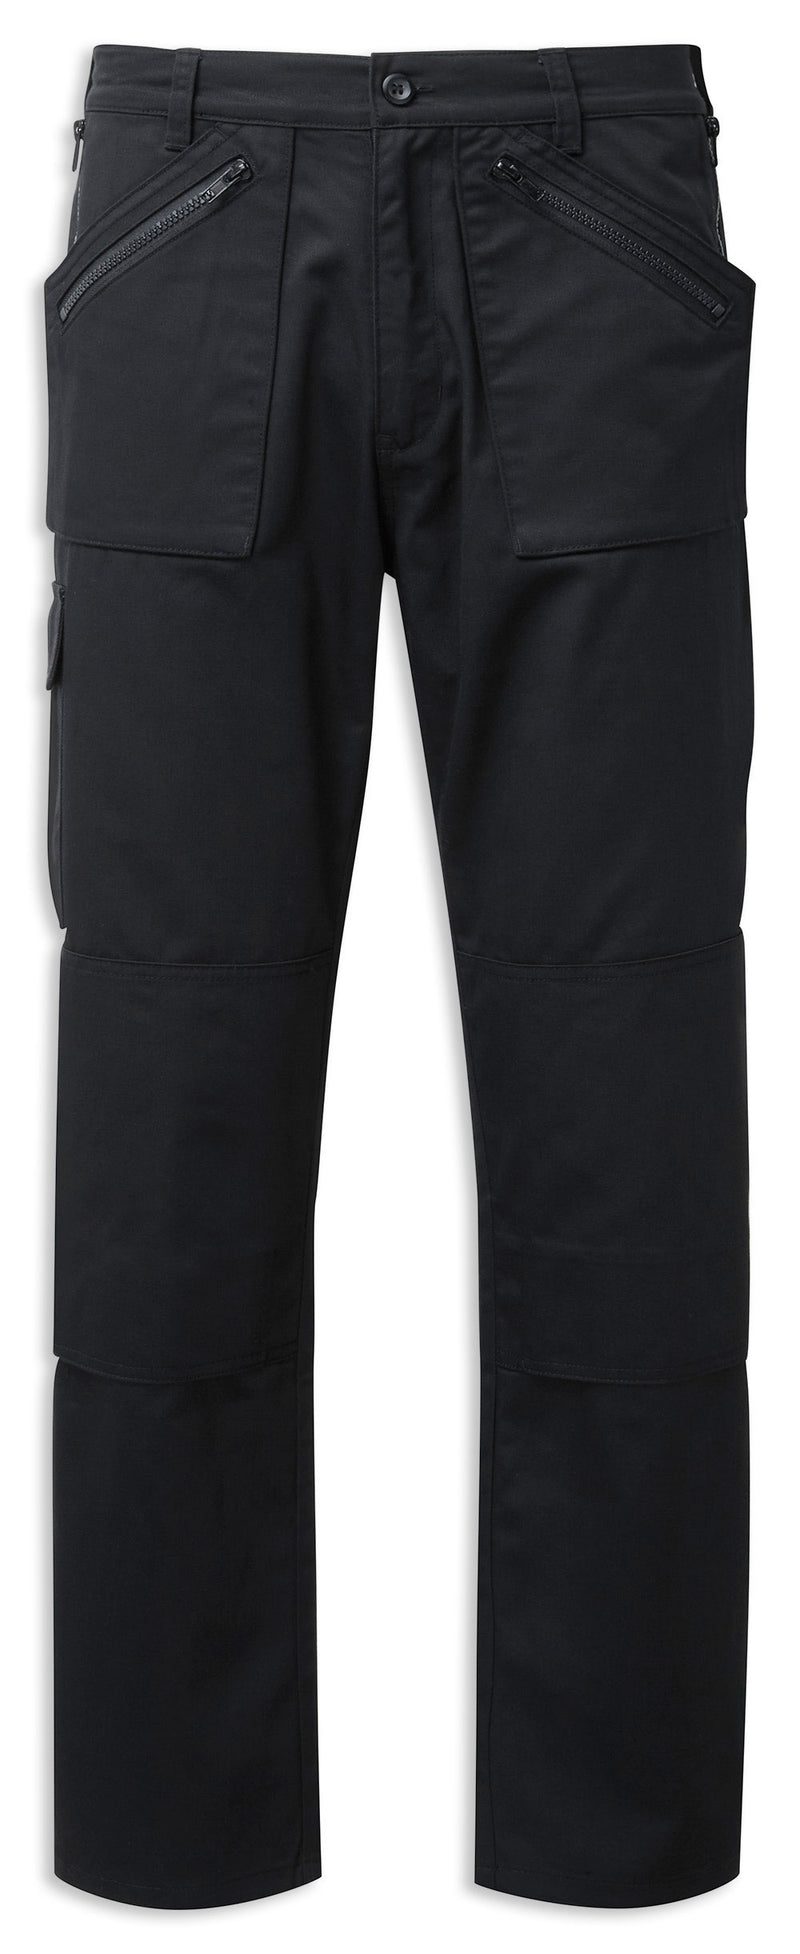 Fort Action Multi-pocket Trousers 909